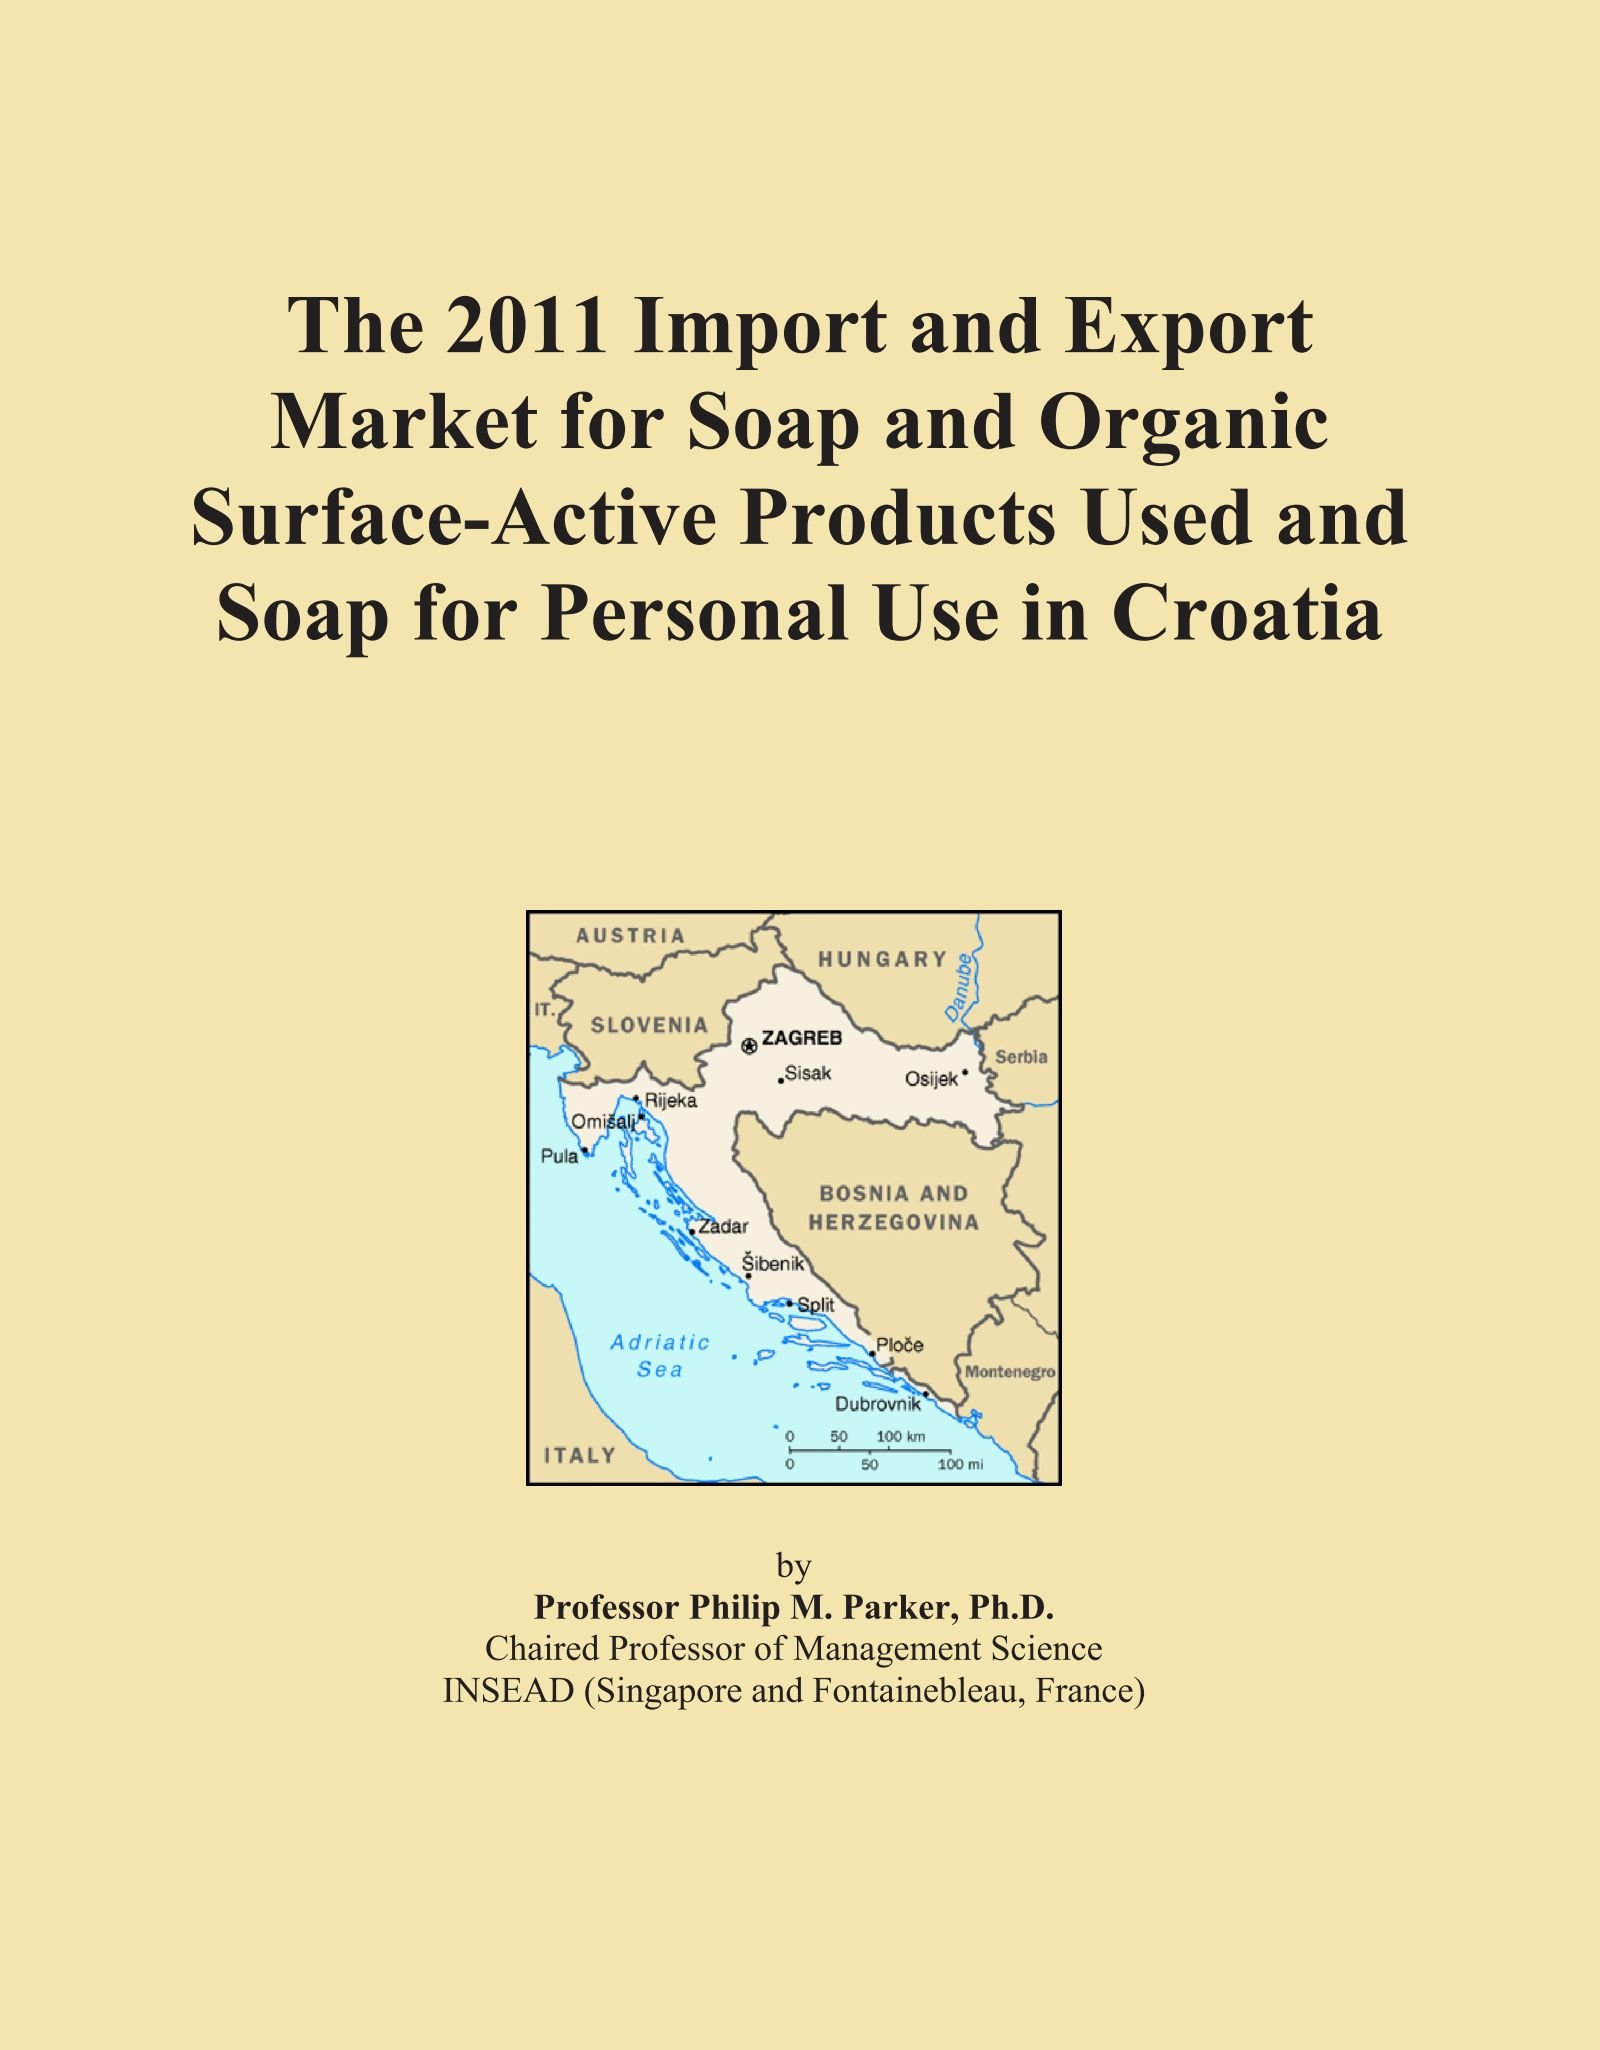 The 2011 Import and Export Market for Soap and Organic Surface-Active Products Used and Soap for Personal Use in Croatia PDF